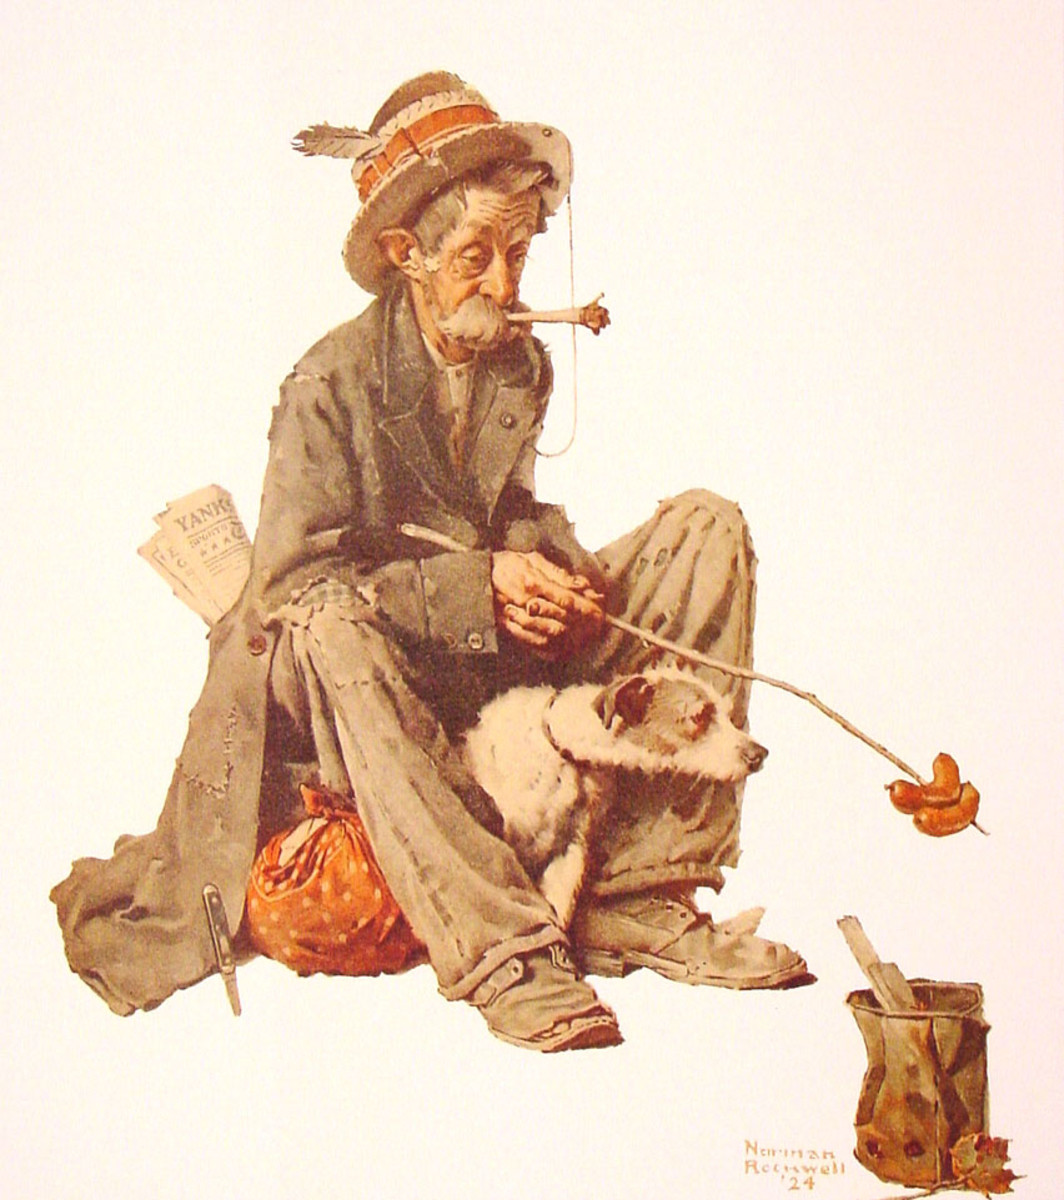 Even a hobo has o eat. It may not be glamorous, but he suvices.